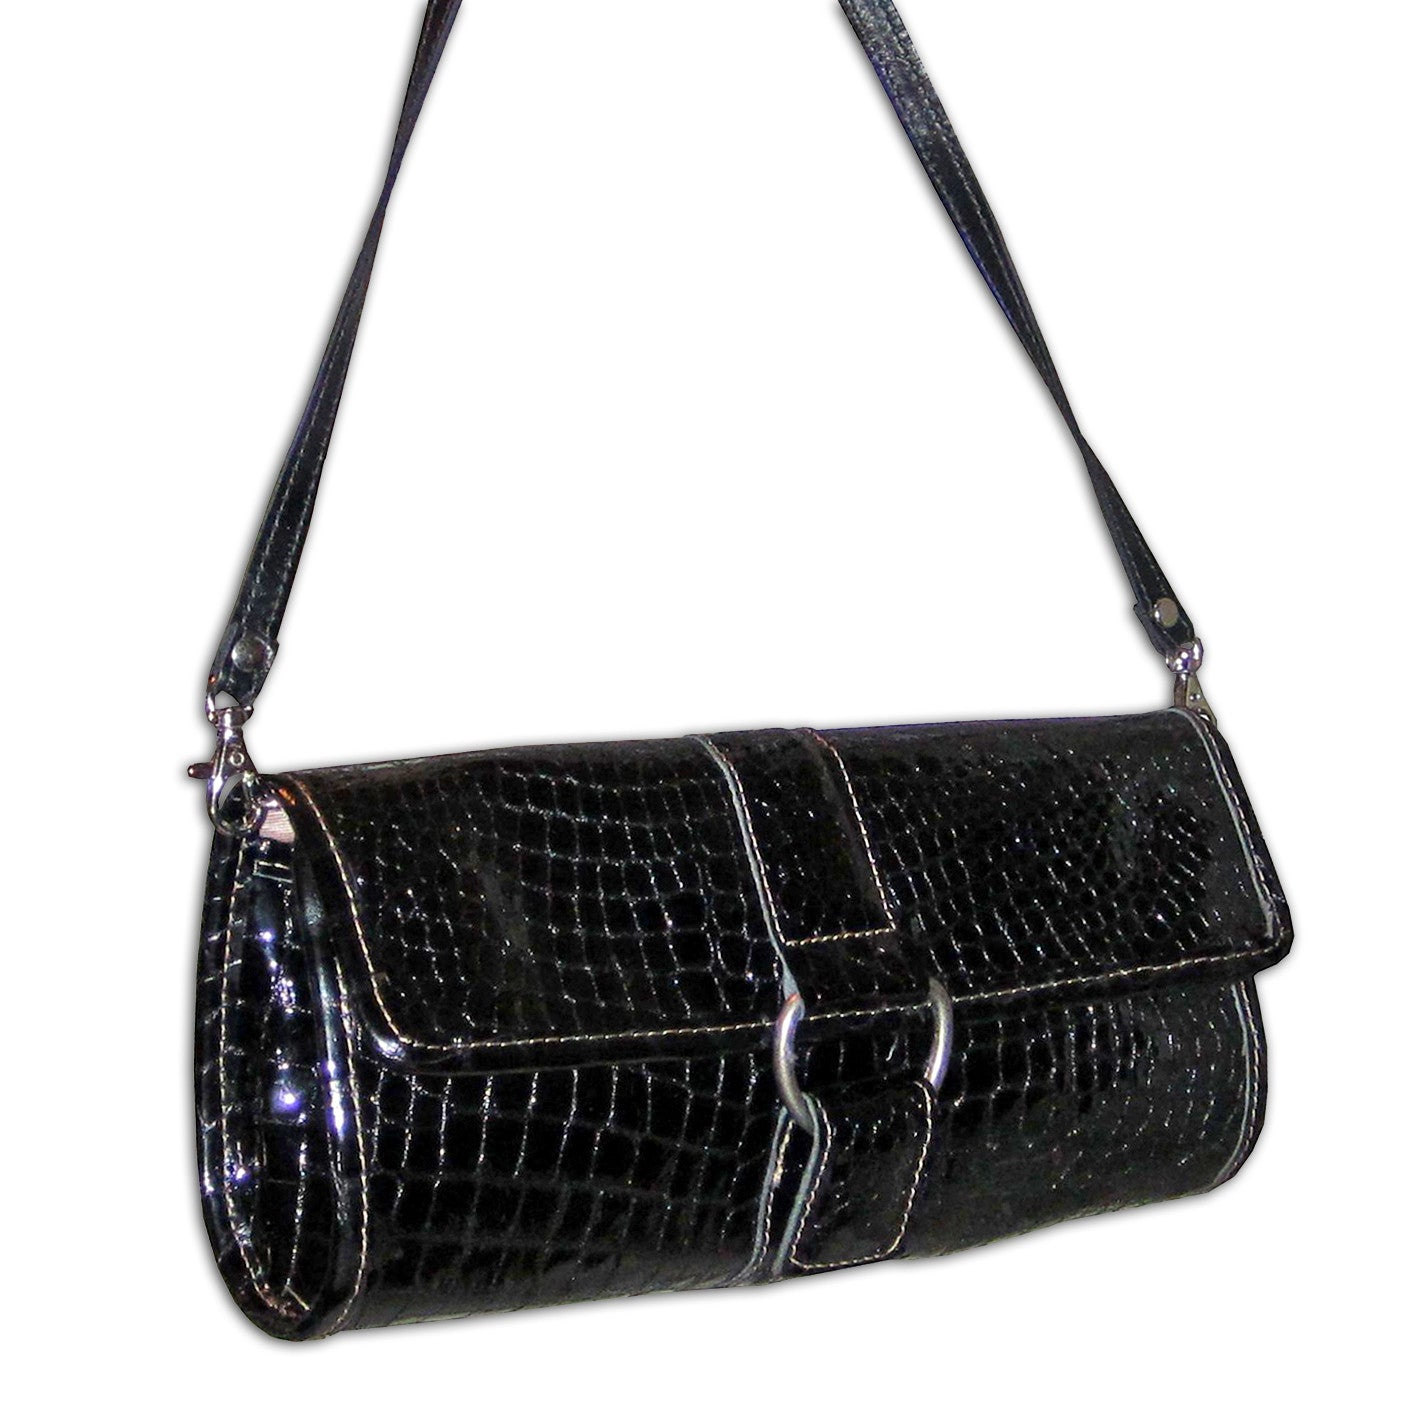 Janey clutch - Black Liner - Brynn Capella, Product